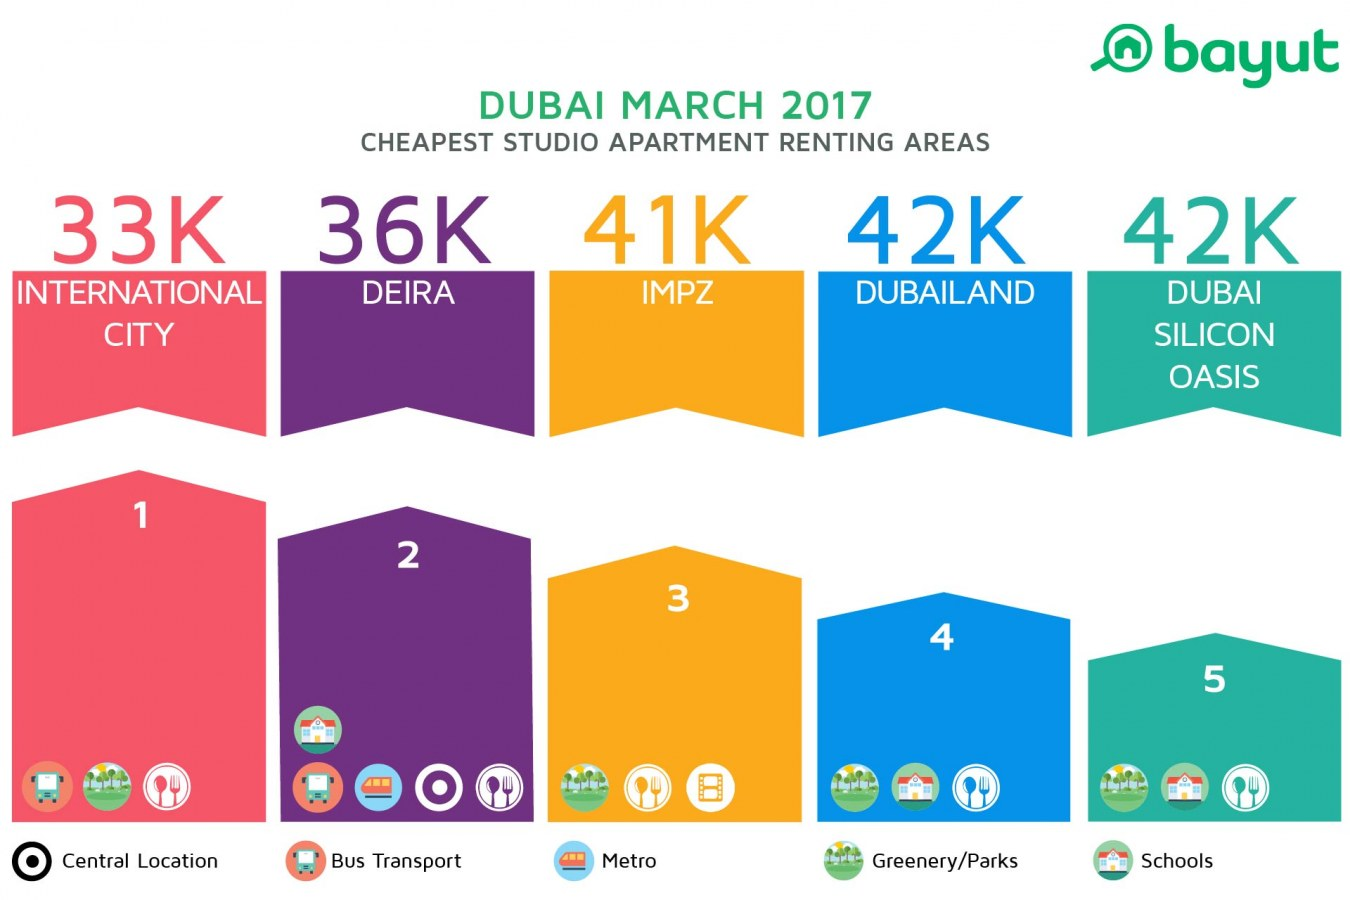 Infographic: Most affordable studio apartment renting areas in Dubai March 2017